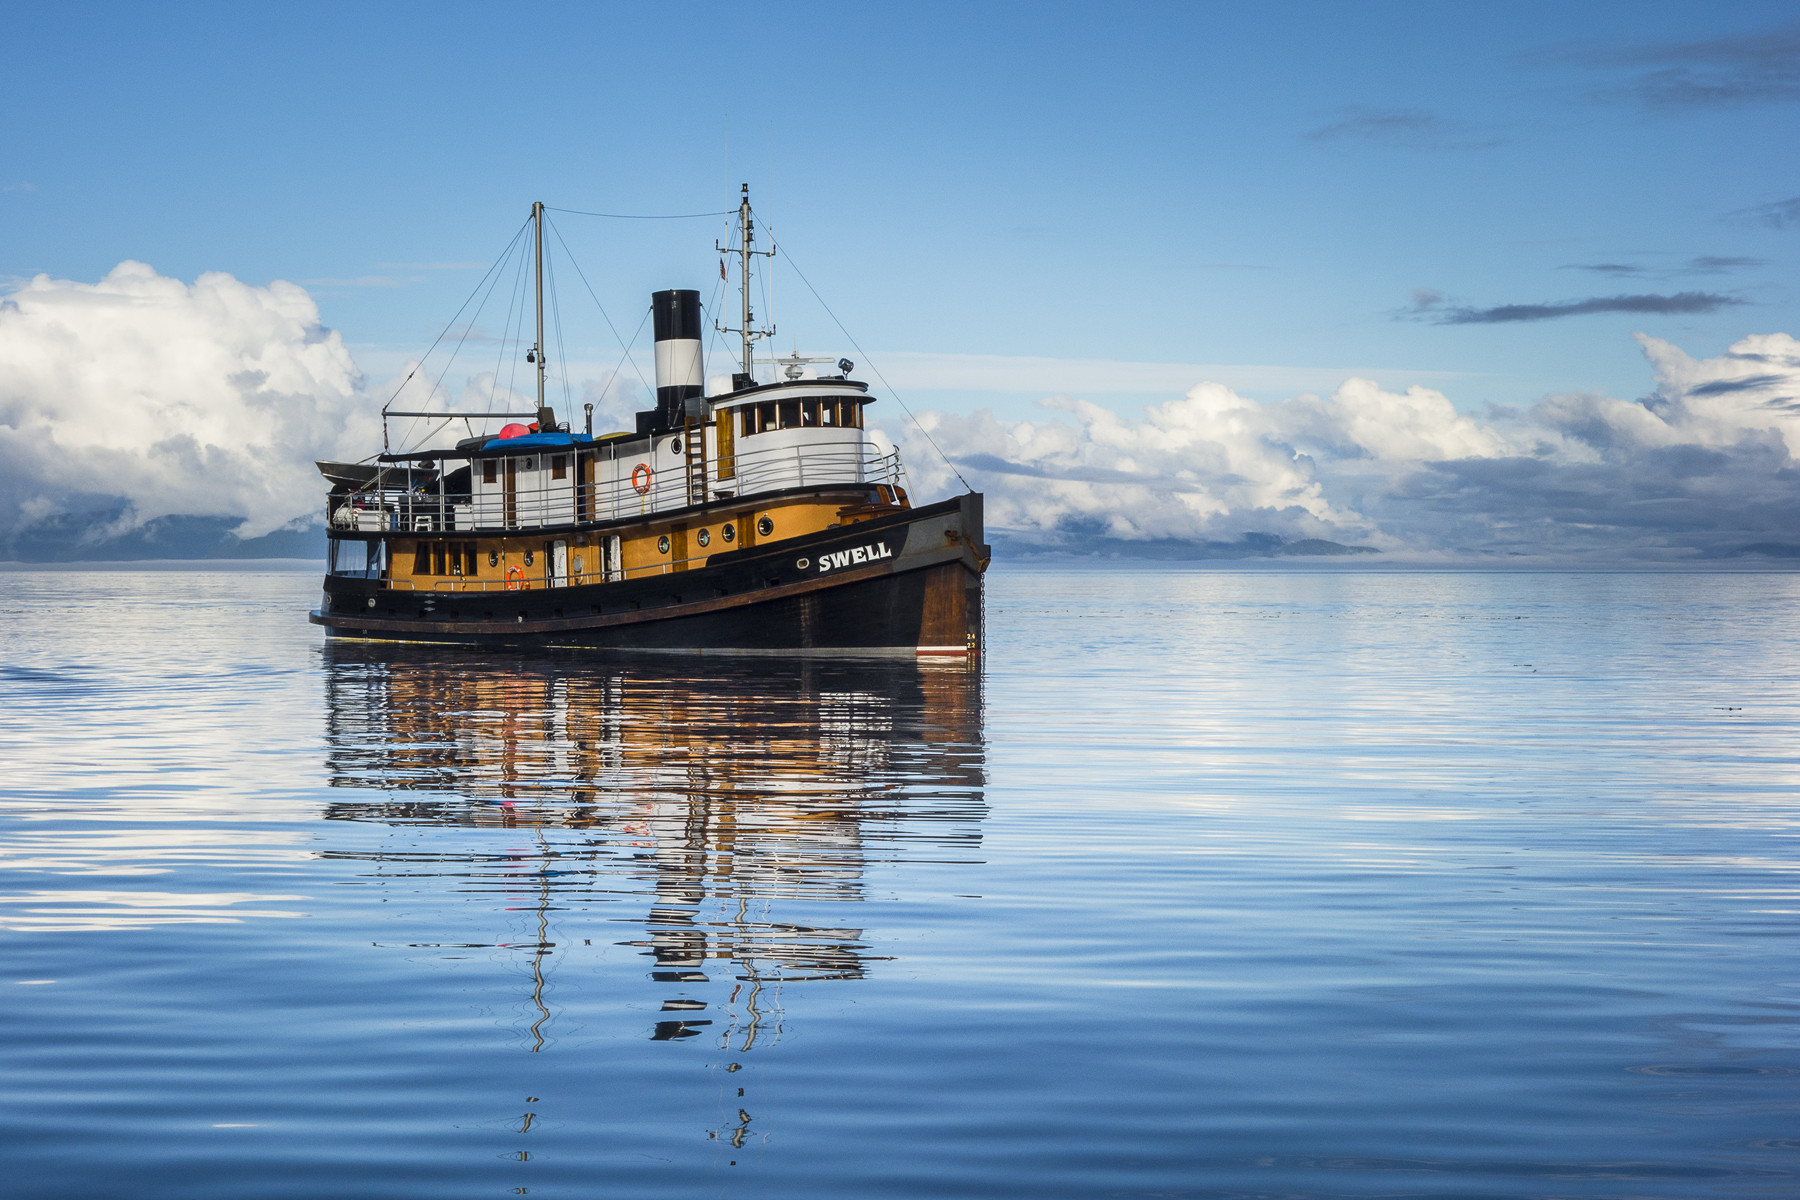 For A Swell Time Try A Tugboat Cruise On British